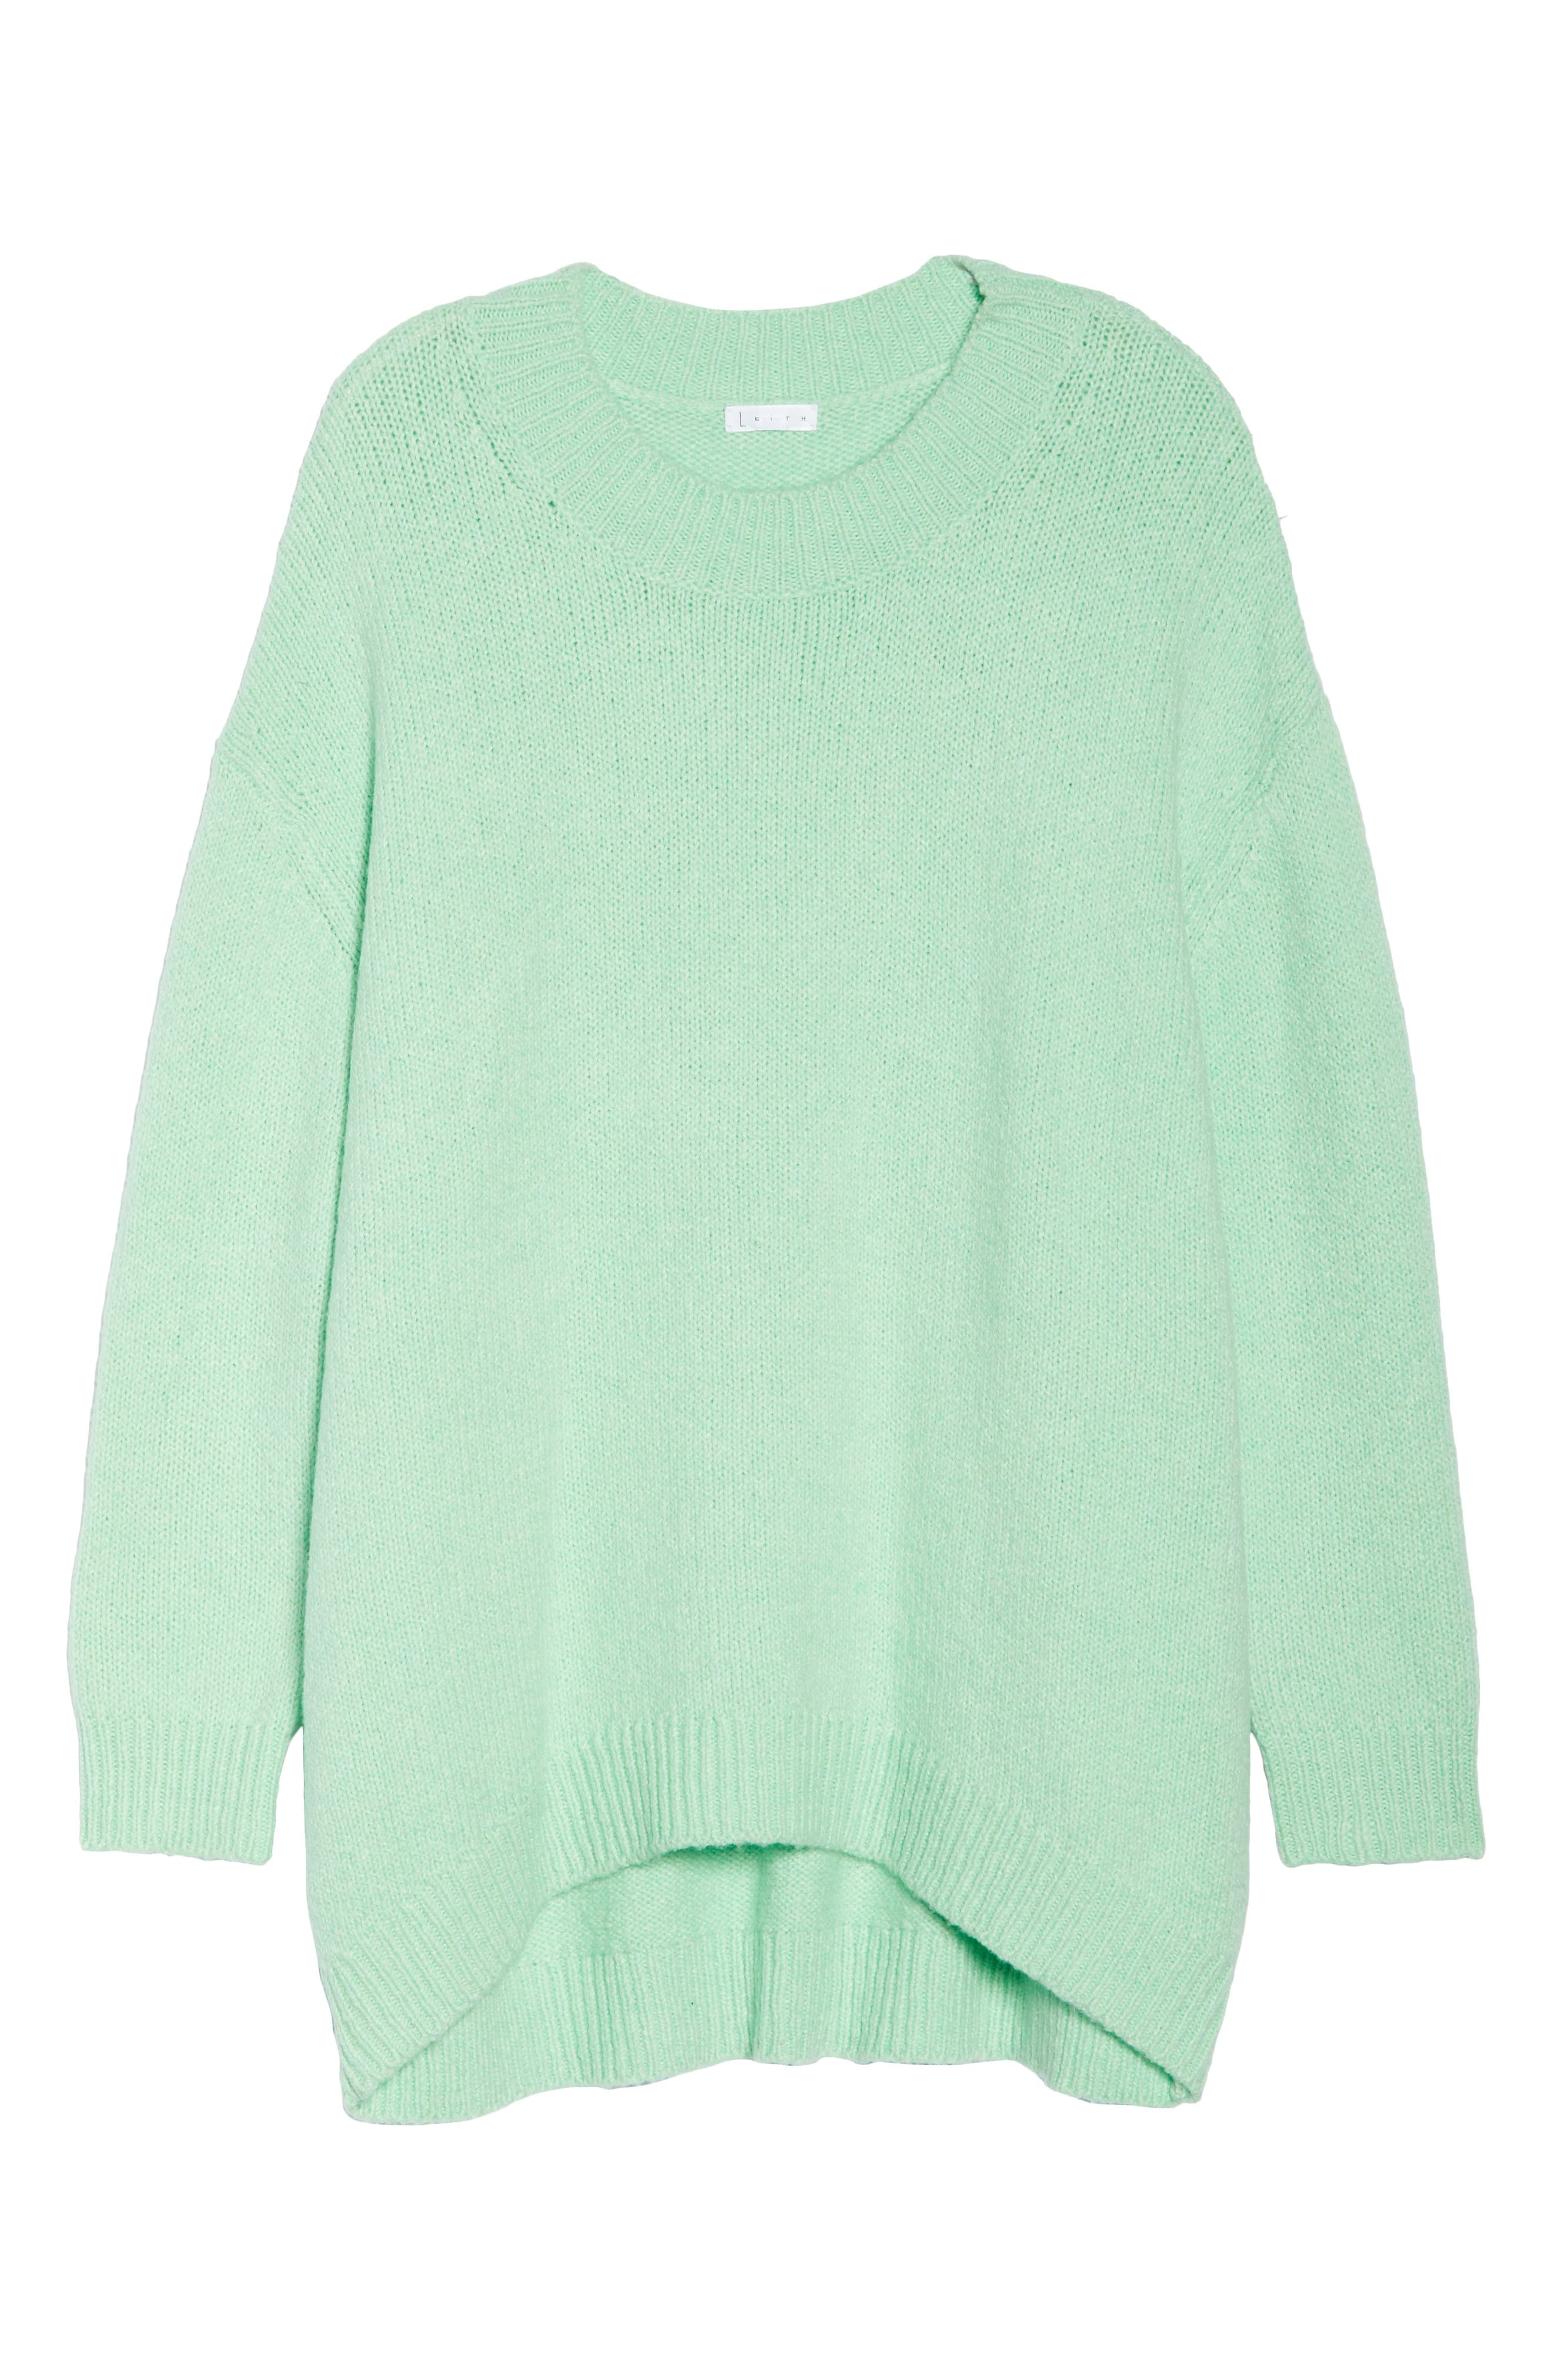 High-Low Sweater,                             Alternate thumbnail 10, color,                             GREEN ASH